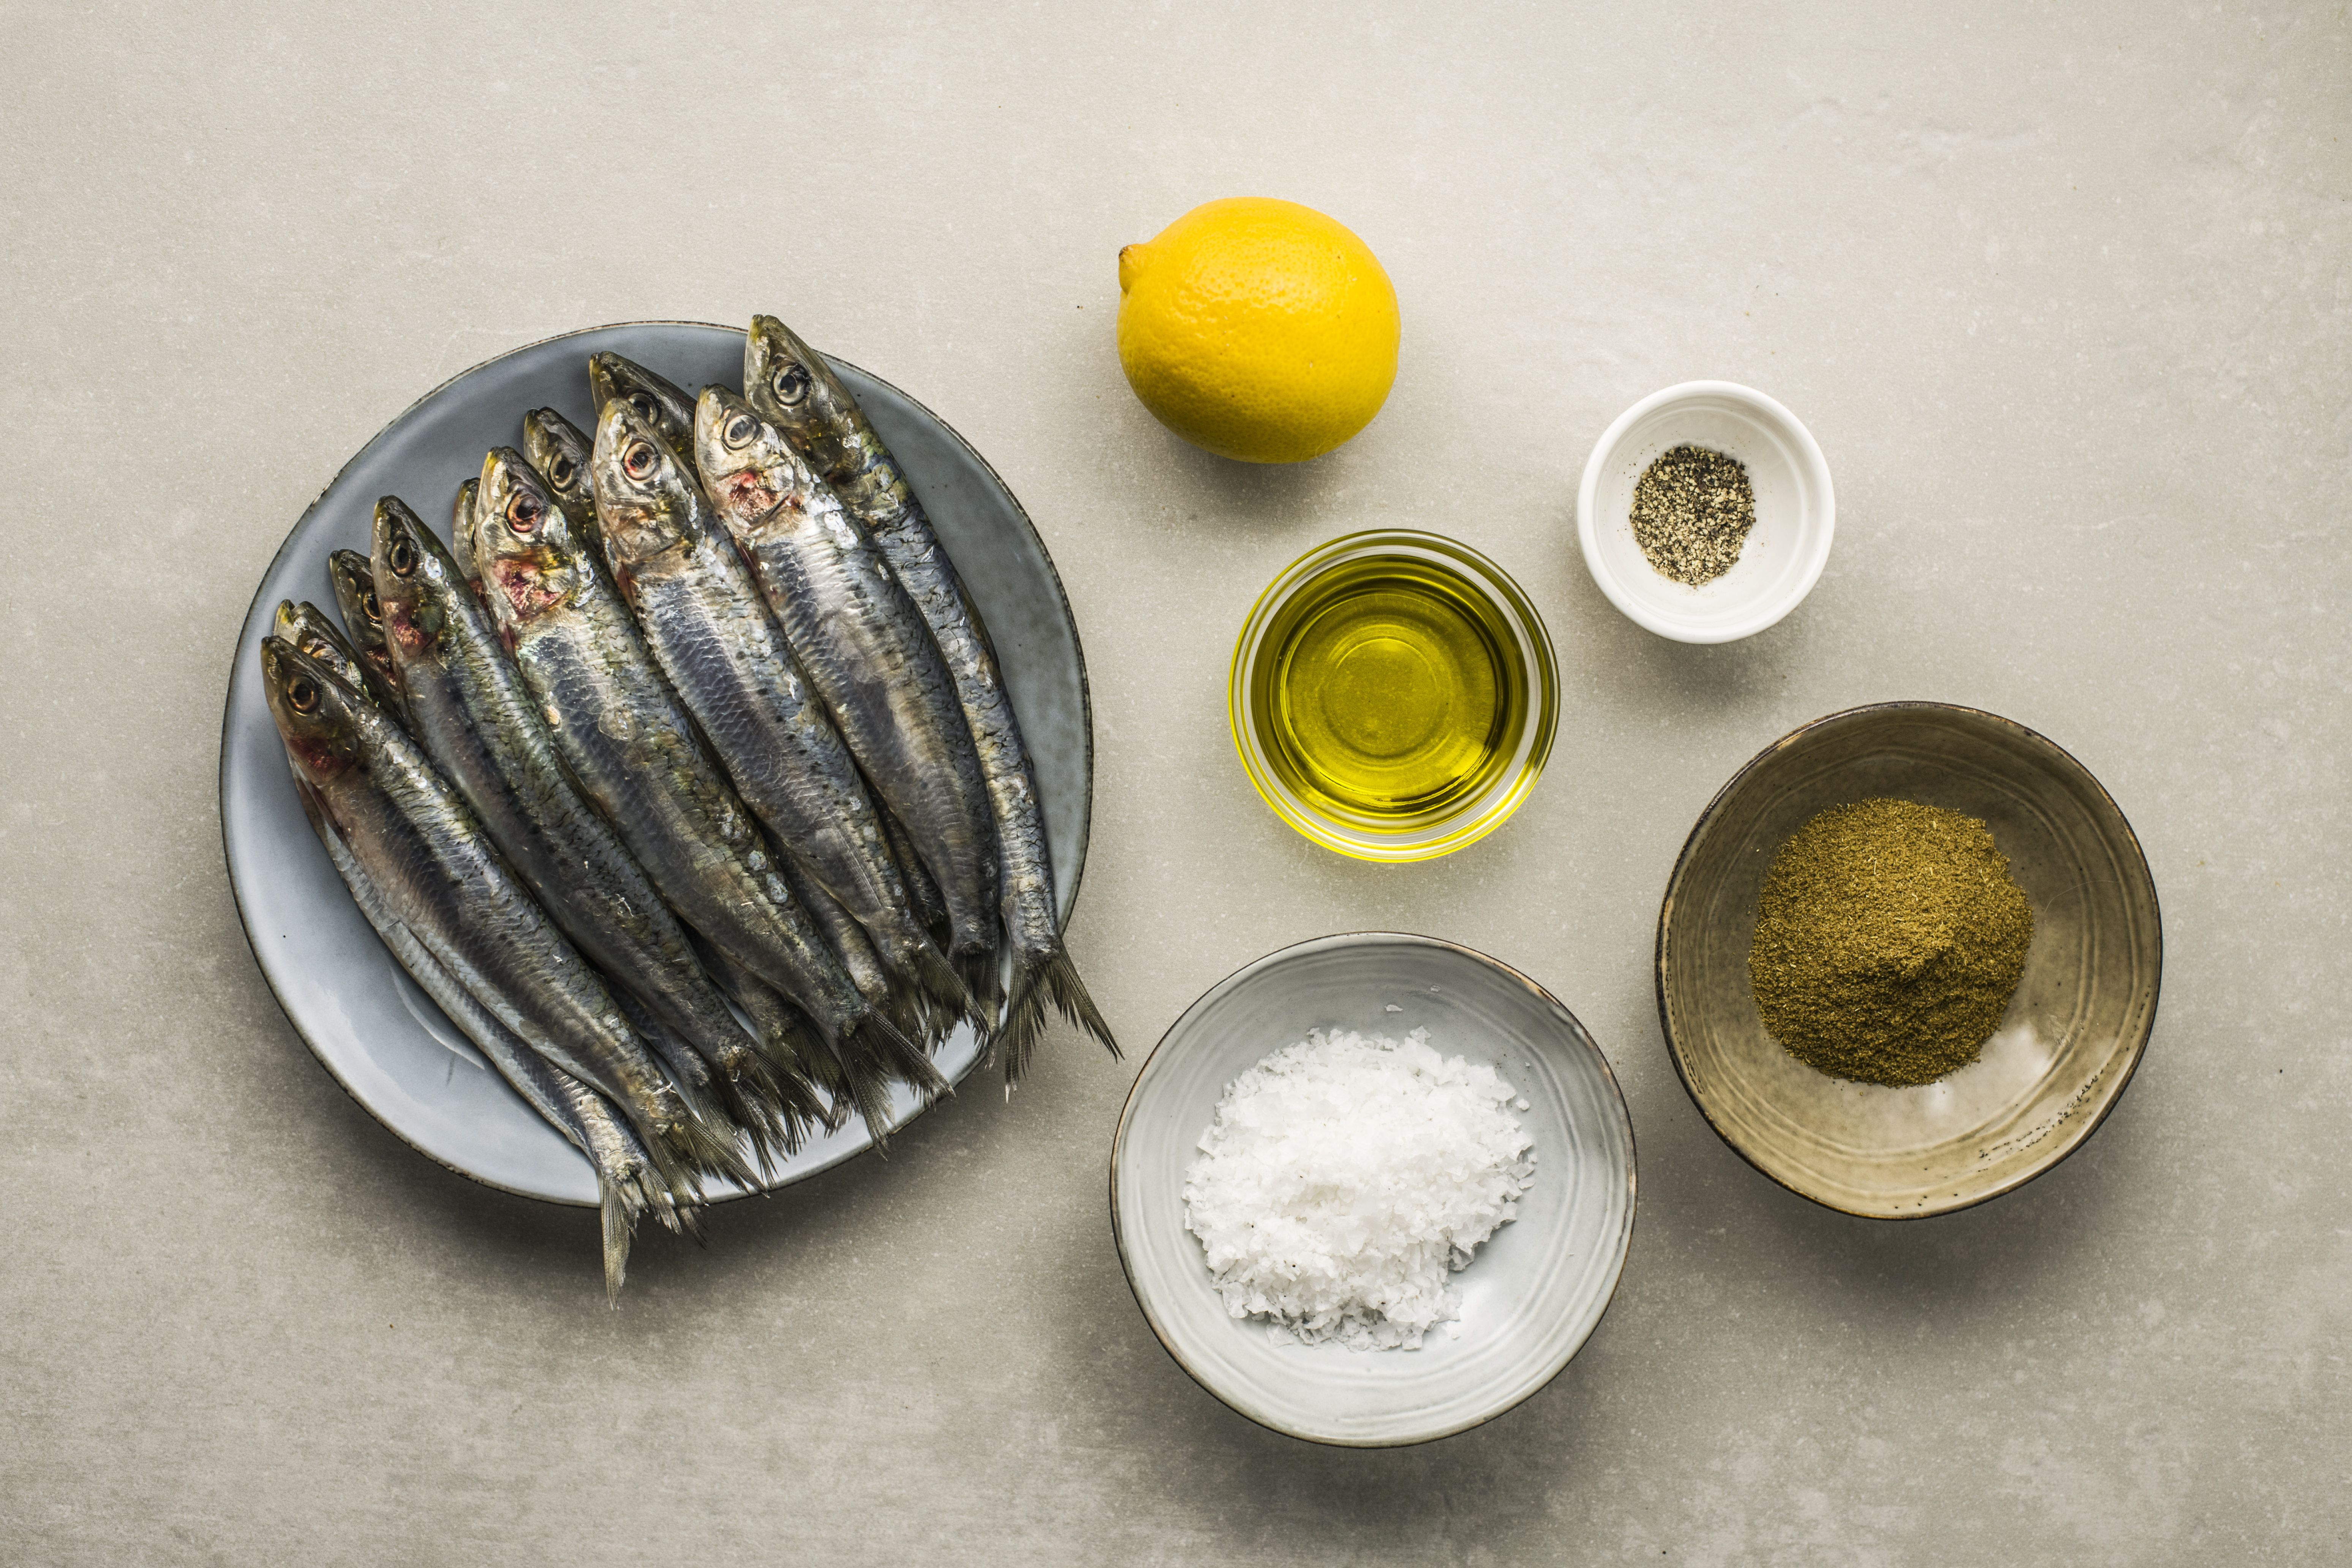 Ingredients for Moroccan baked sardines